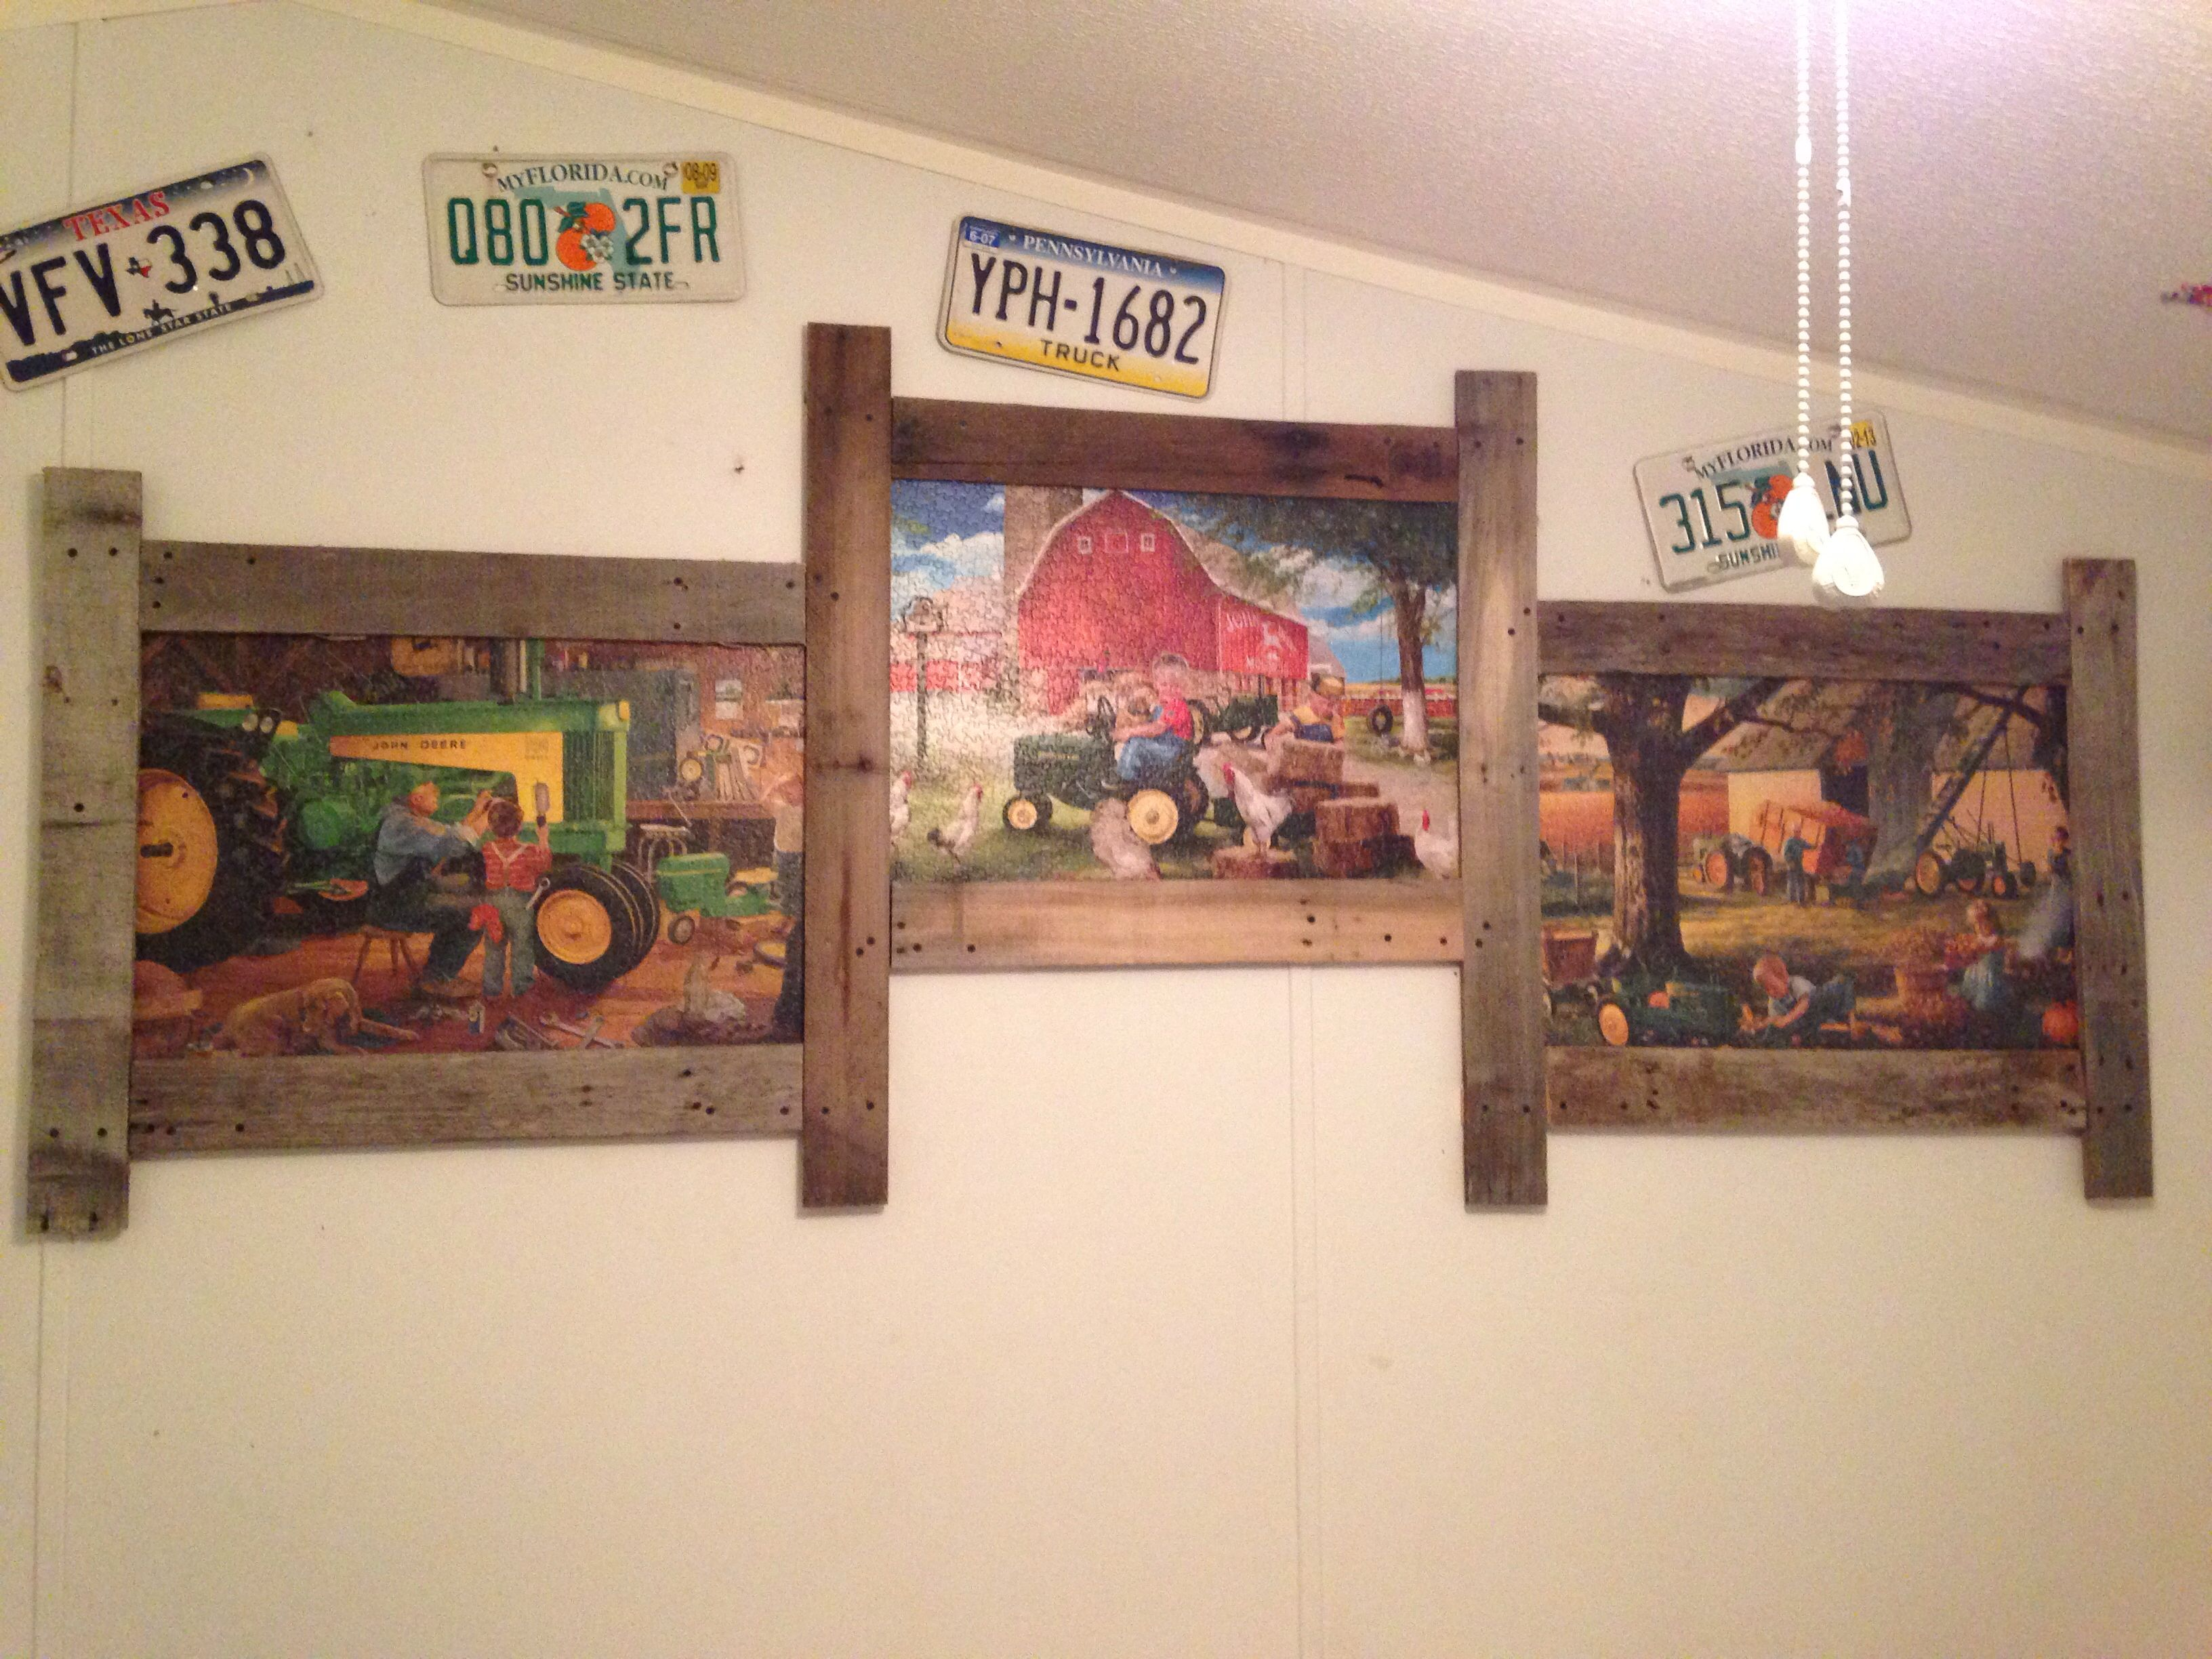 We Glued Three Puzzles Together For Framing And Used Weathered Pallets For Frame Puzzle Frame Wall Decor Crafts Puzzle Crafts